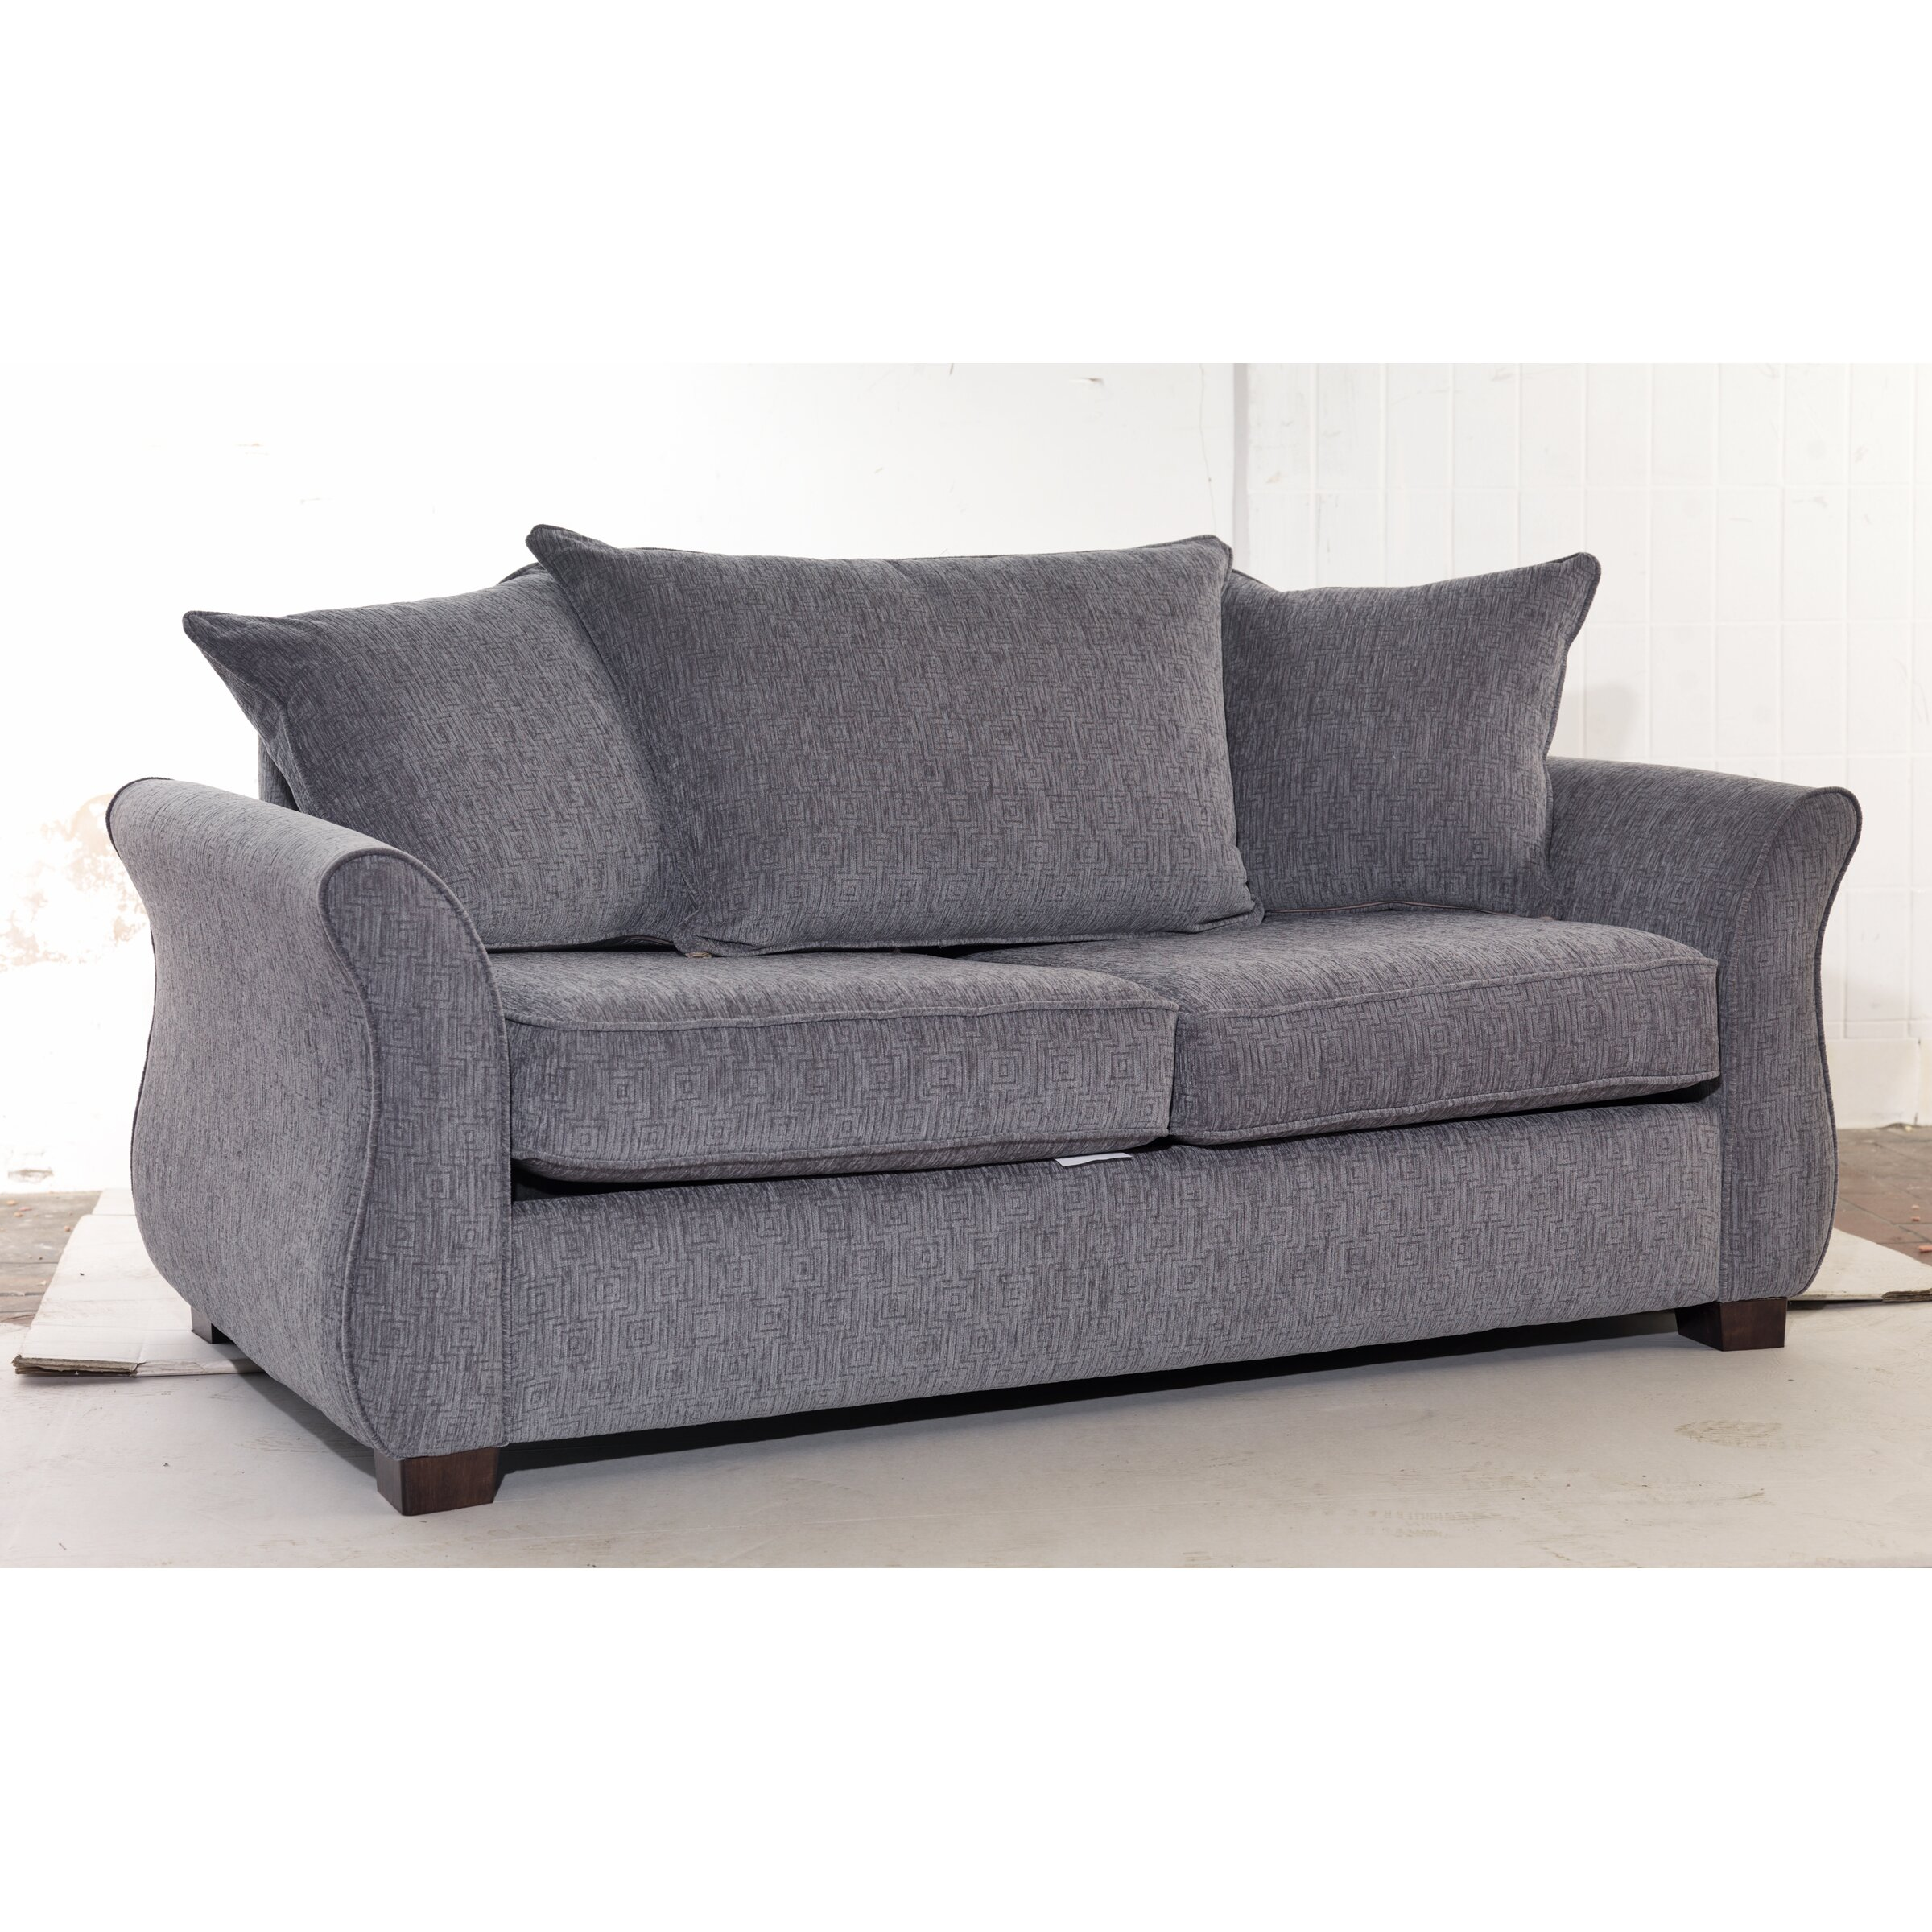 2 Seater Sofa Cover Uk